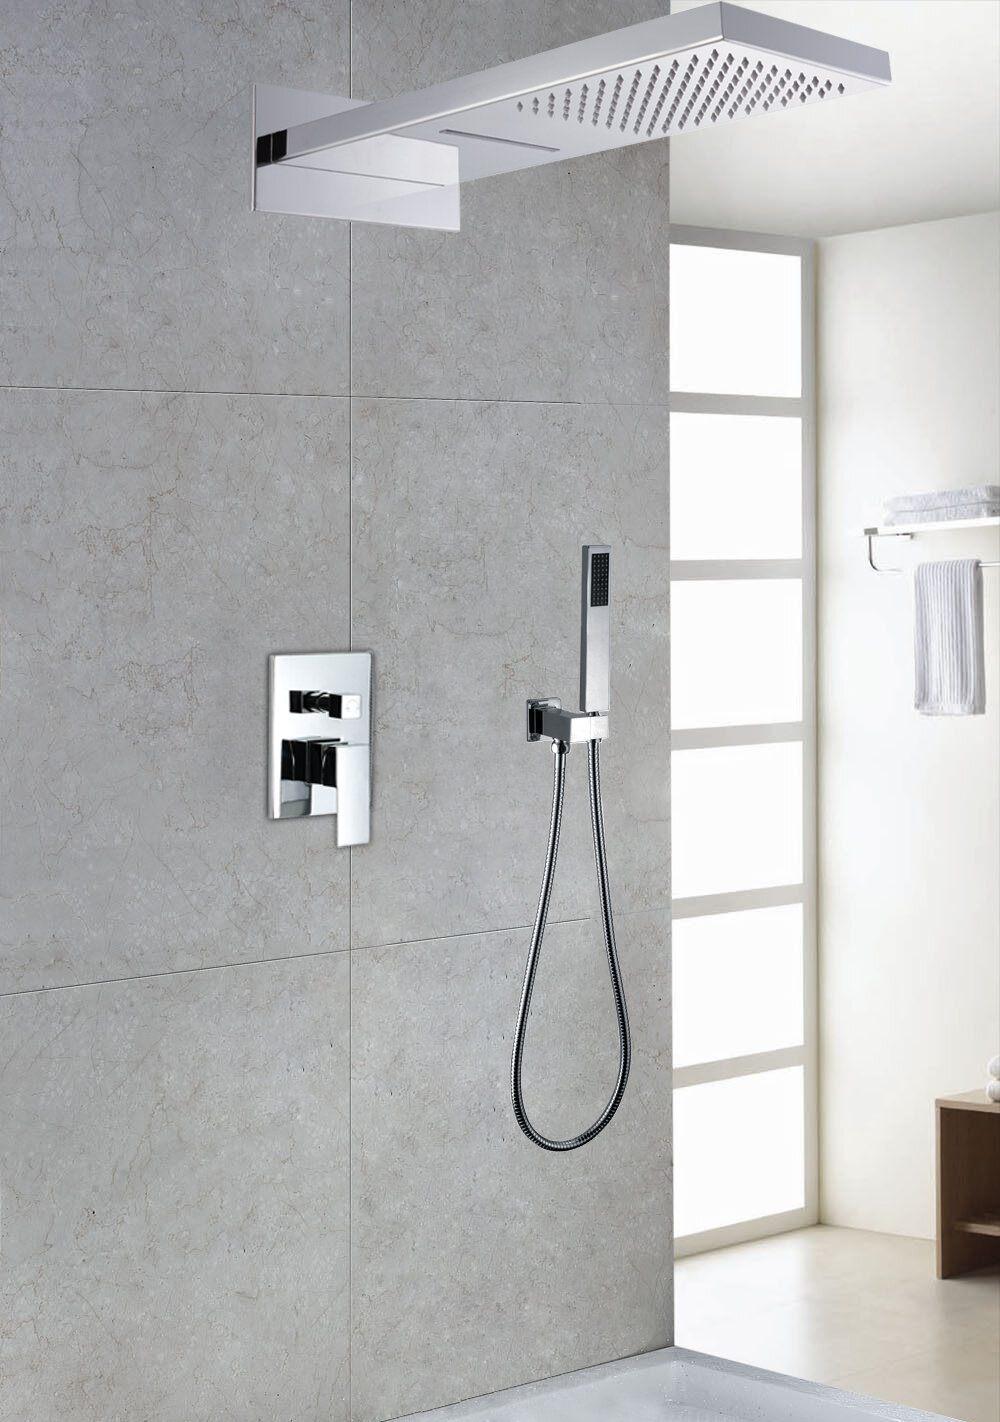 system rainfall adapter with hand head wall tosca bronze shower oil rubbed dual and showerhead thermostatic mixer